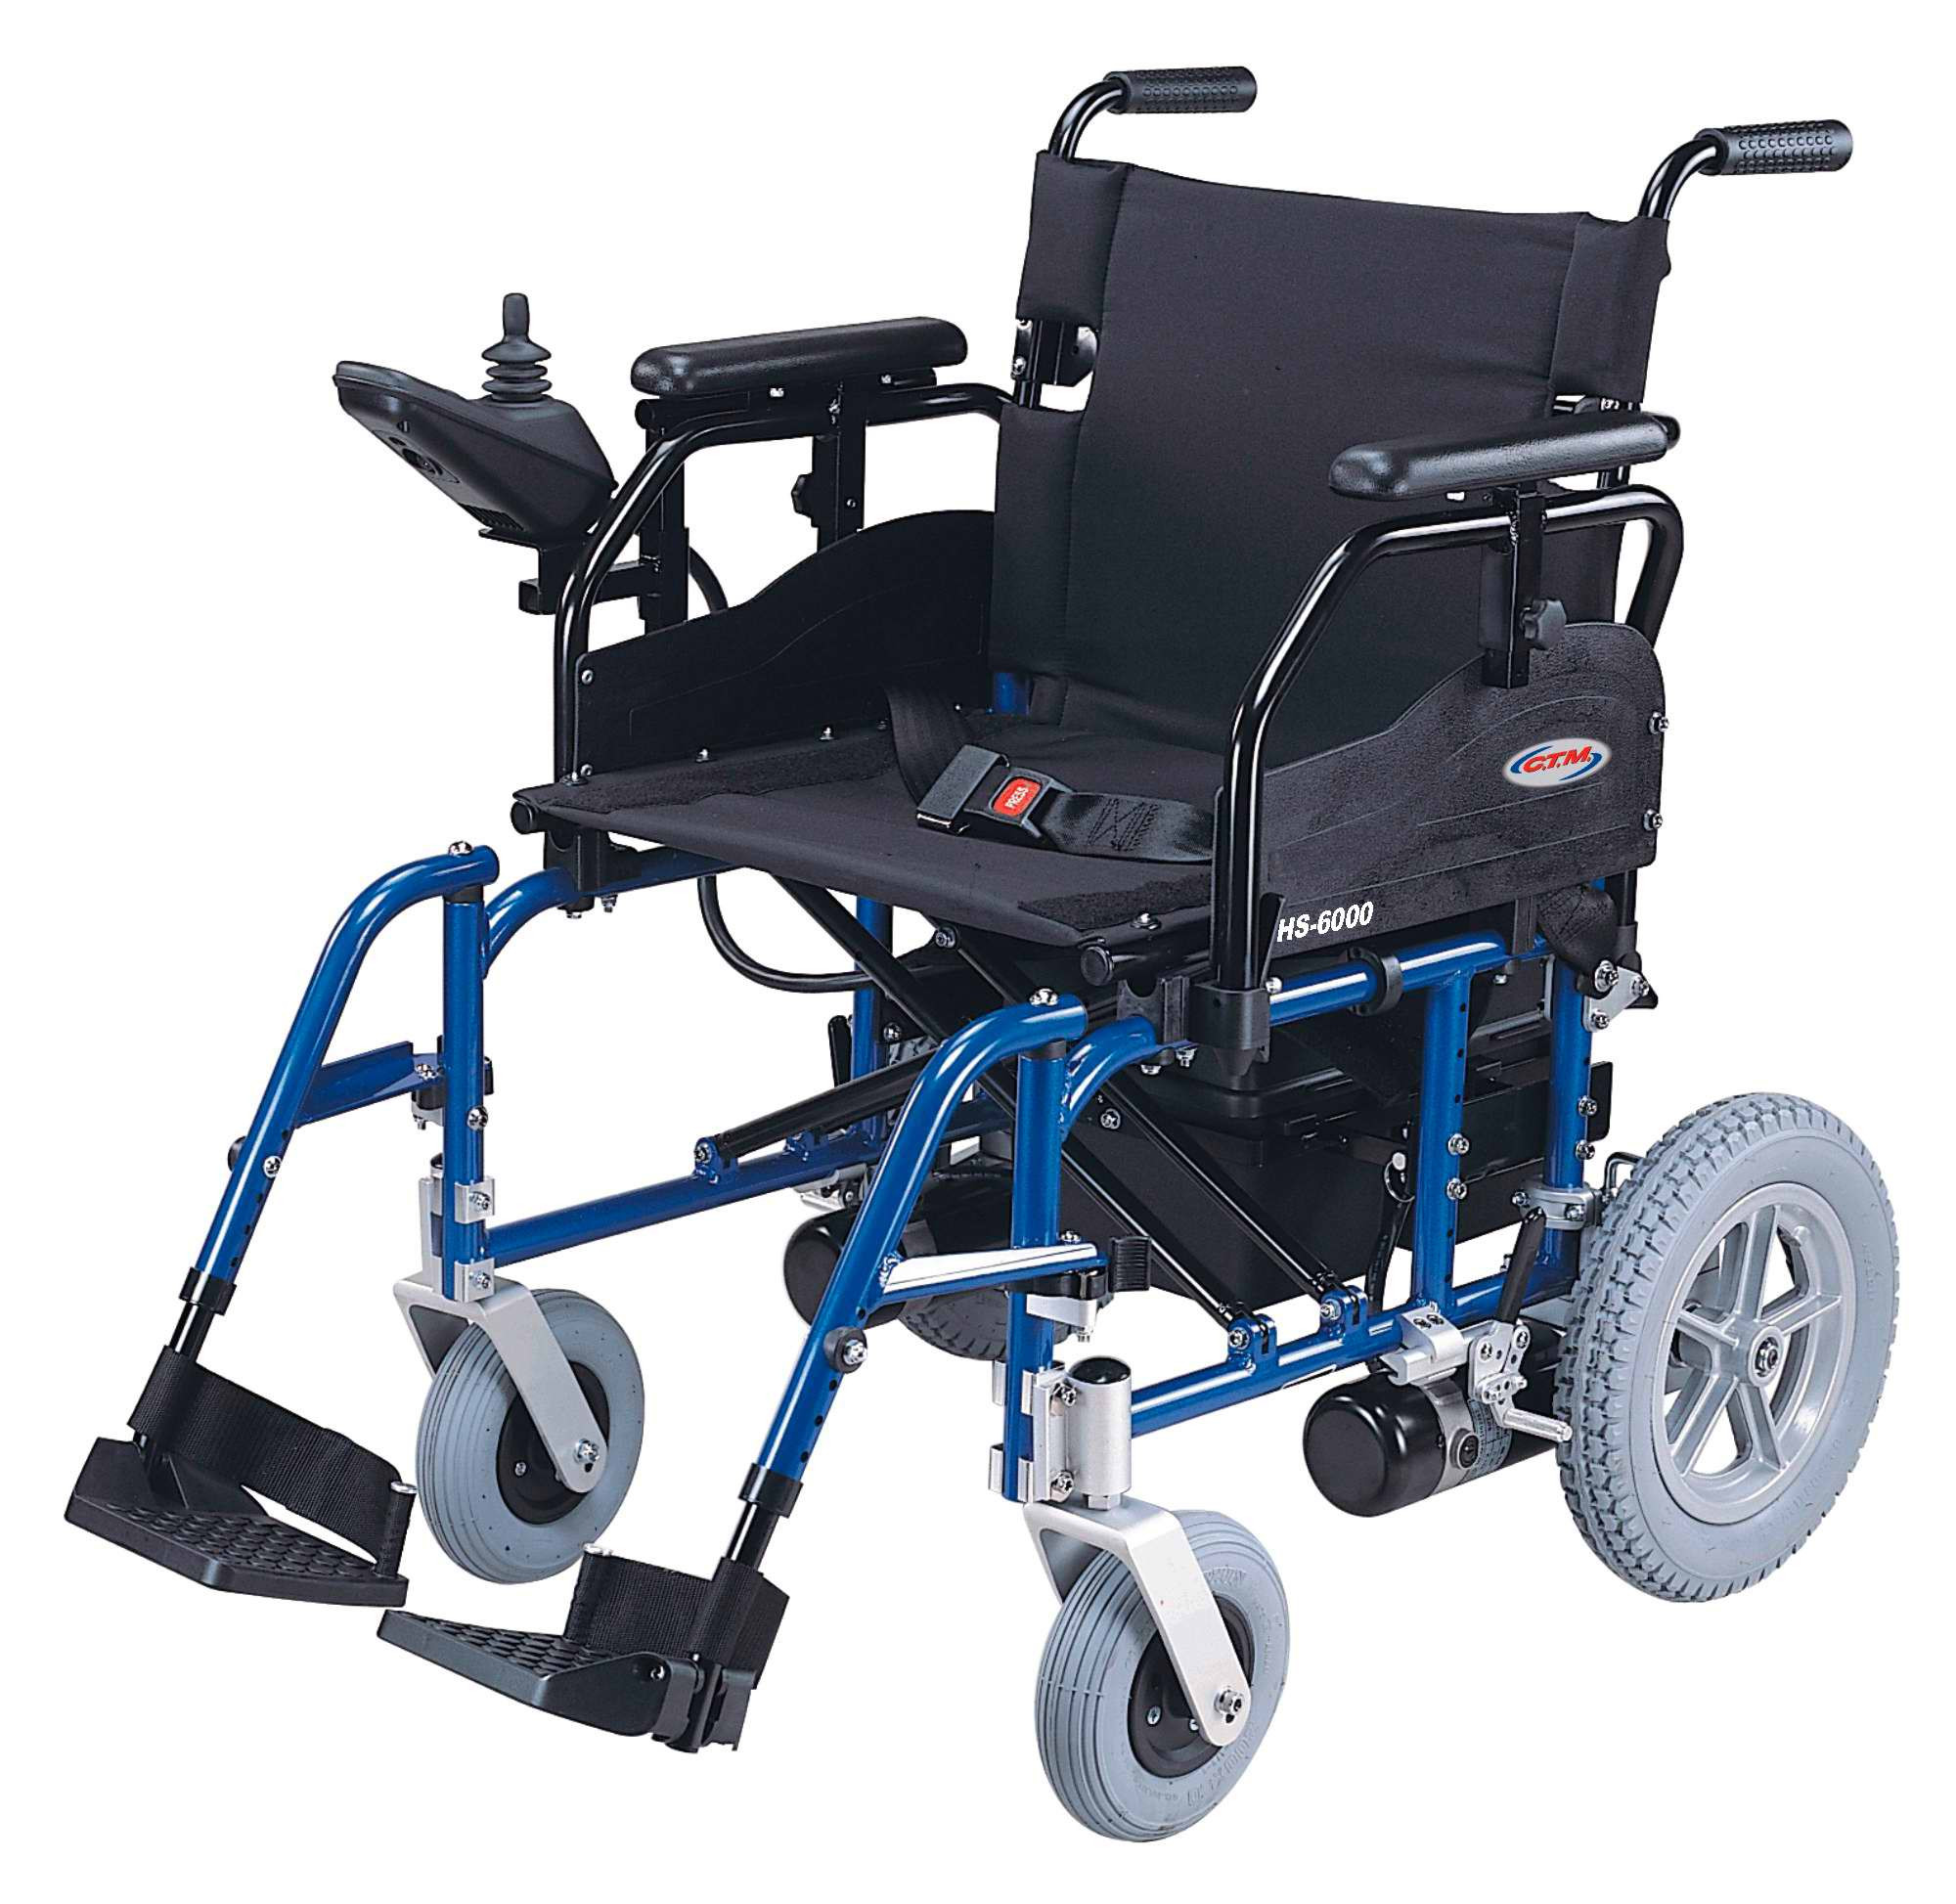 wheel chair in delhi floating pool with umbrella ctm hs 6200 power wheelchair for sale lowest prices tax